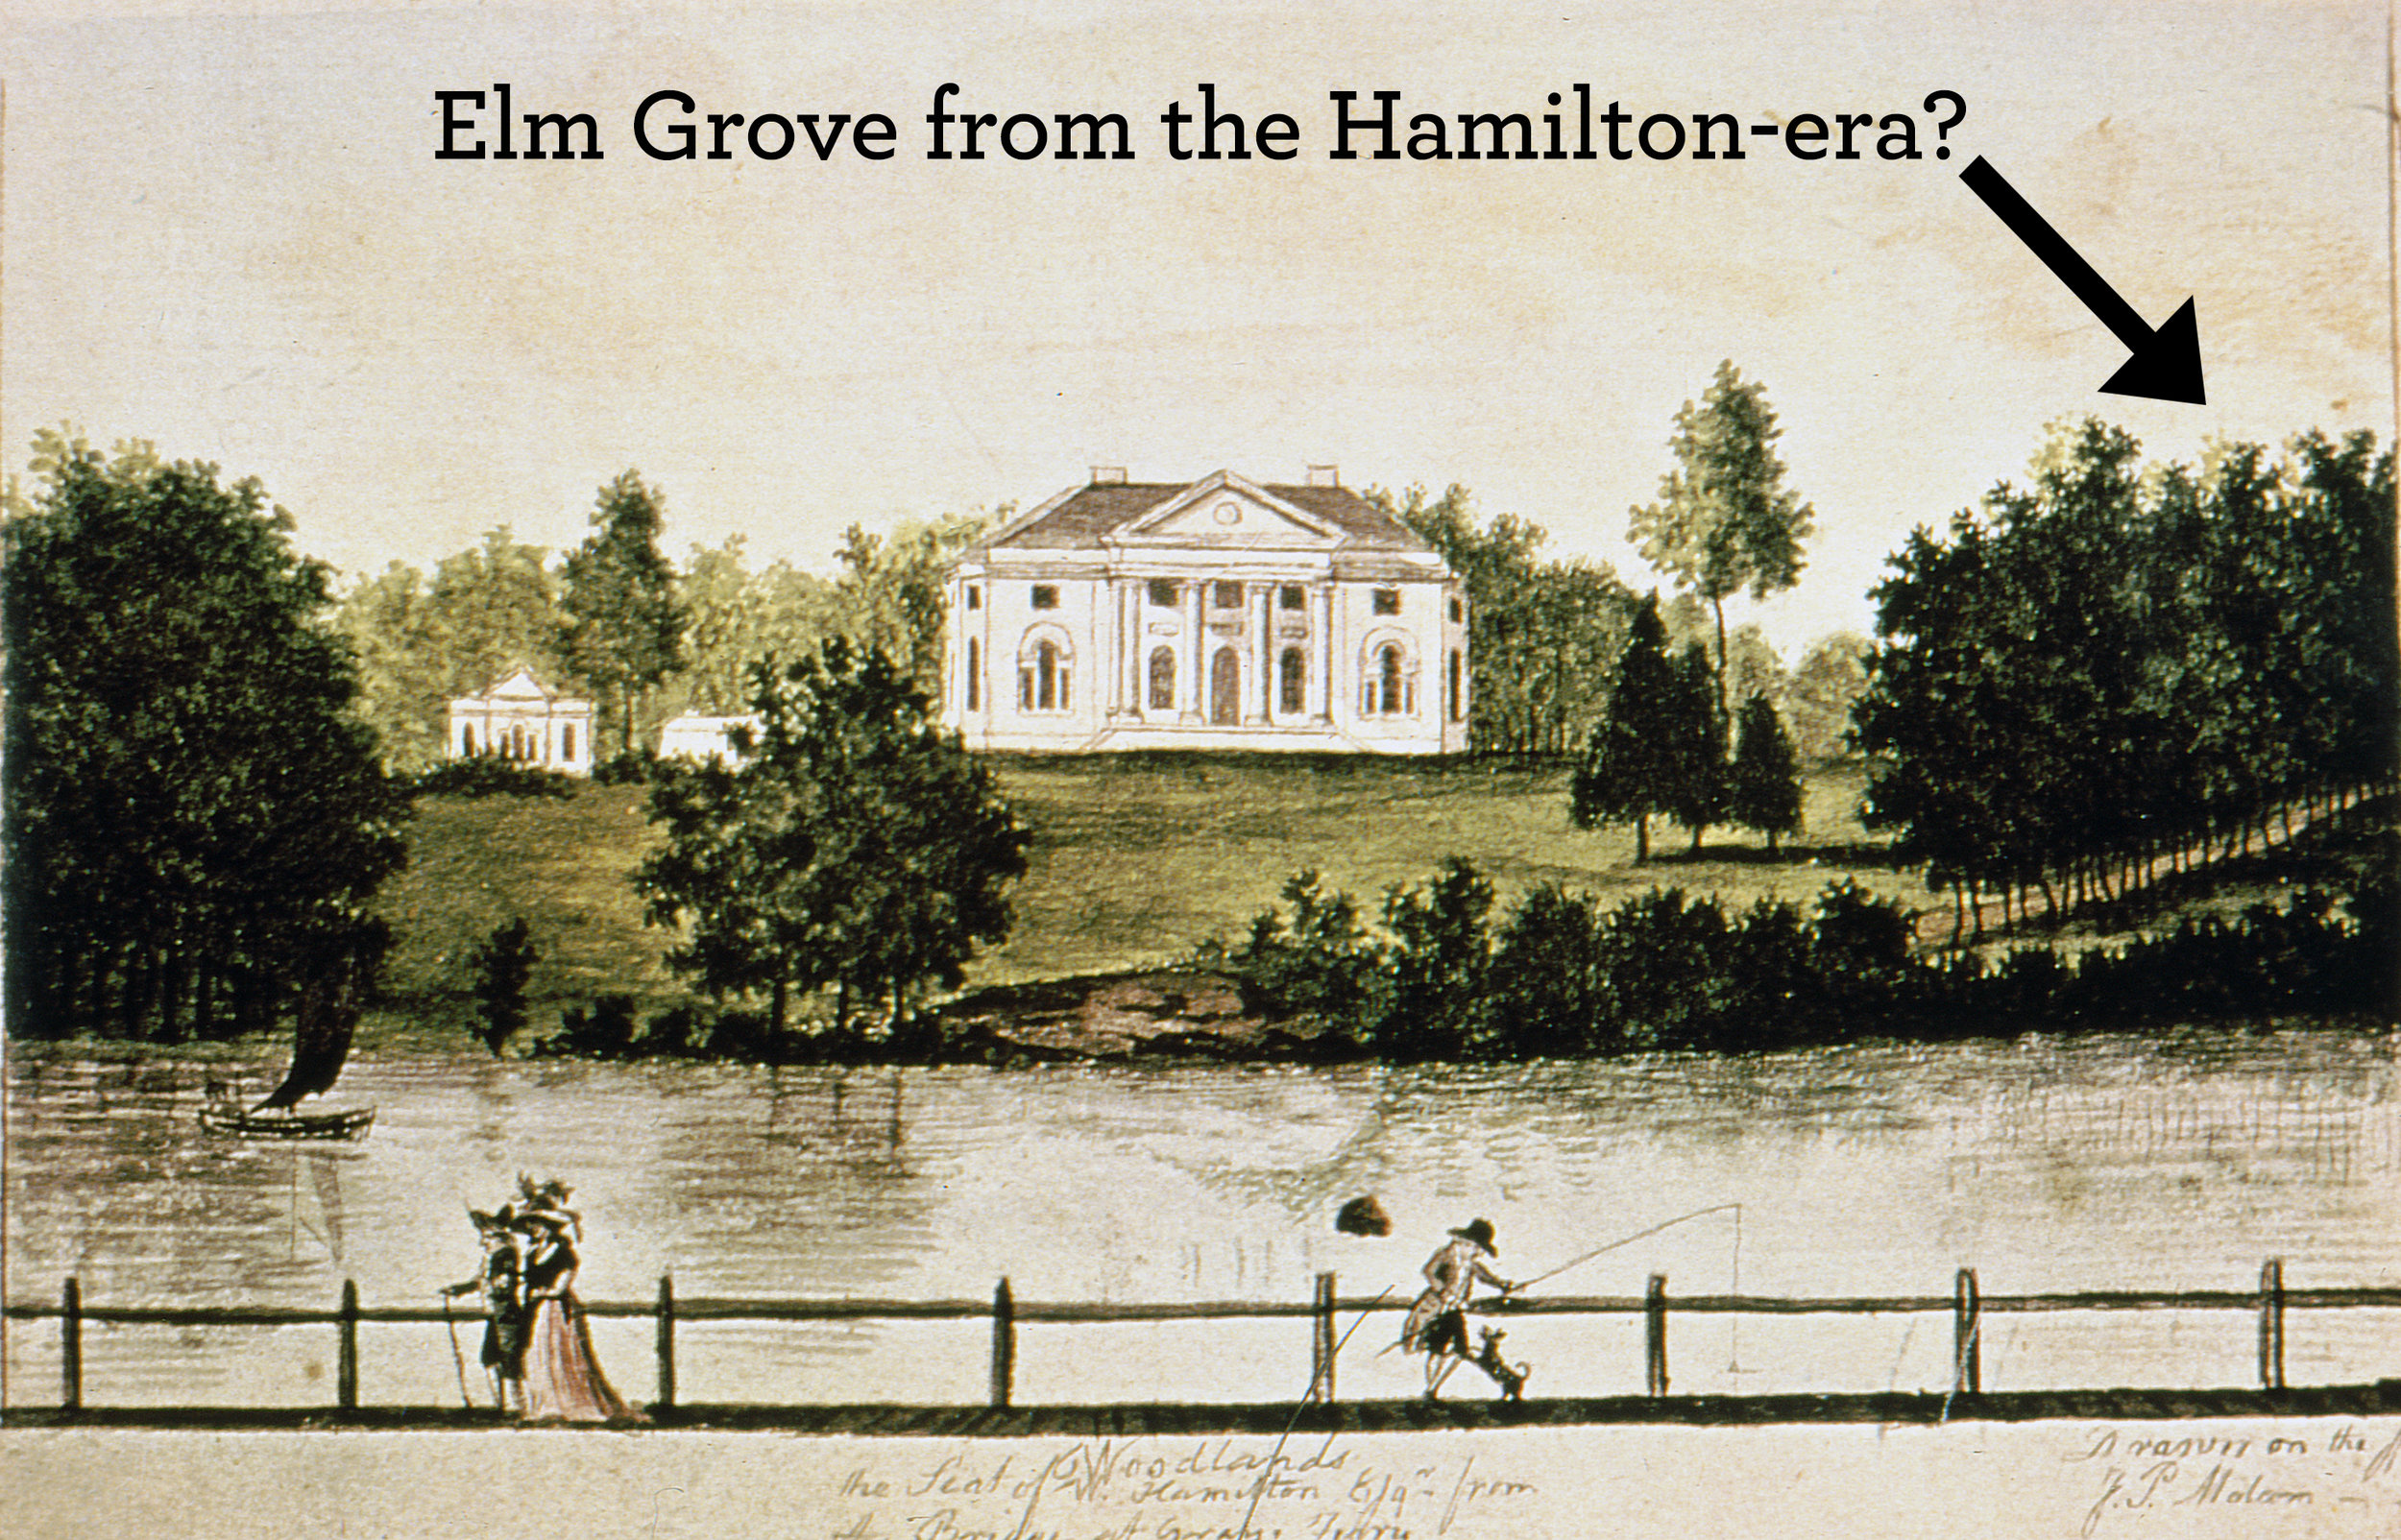 James Peller Malcom (1767-1815), Woodlands, the Seat of W. Hamilton Esq., from the Bridge at Grey's Ferry, ca. 1792. Watercolor and ink on paper, 3-1/2 x 6-1/2 in. Dietrich American Foundation Collection.